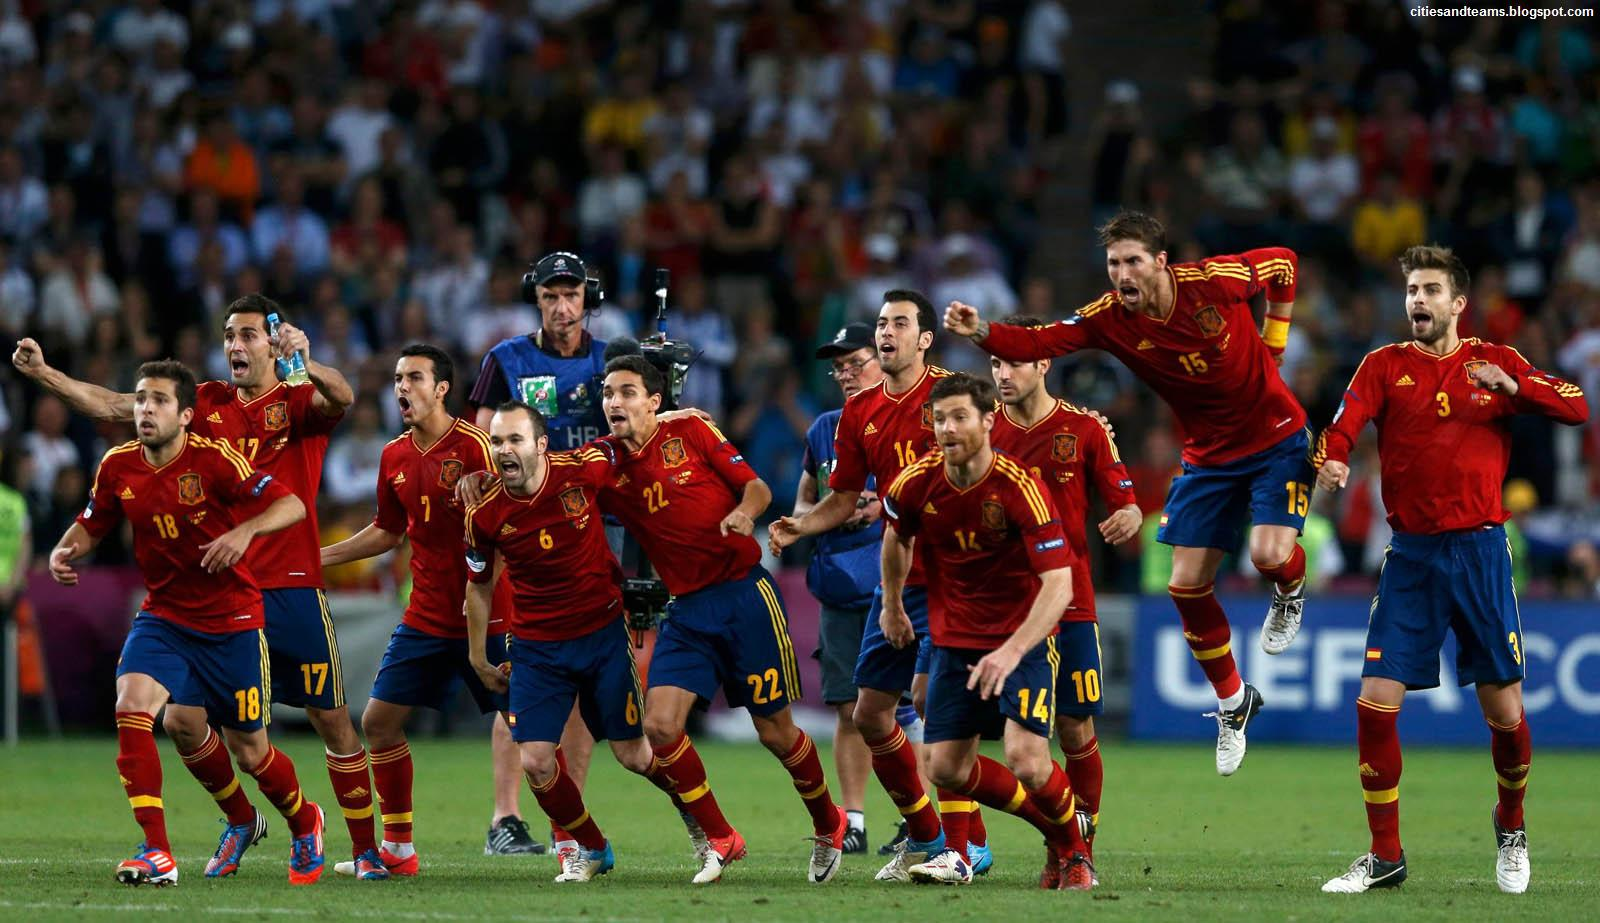 http://2.bp.blogspot.com/-rRW7fjhaFEc/T-36sZ0RAcI/AAAAAAAAGqE/C97c7IA7JpM/s1600/Spain_National_Football_Team_Final_Celebration_Euro_2012_Hd_Desktop_Wallpaper_citiesandteams.blogspot.com.jpg